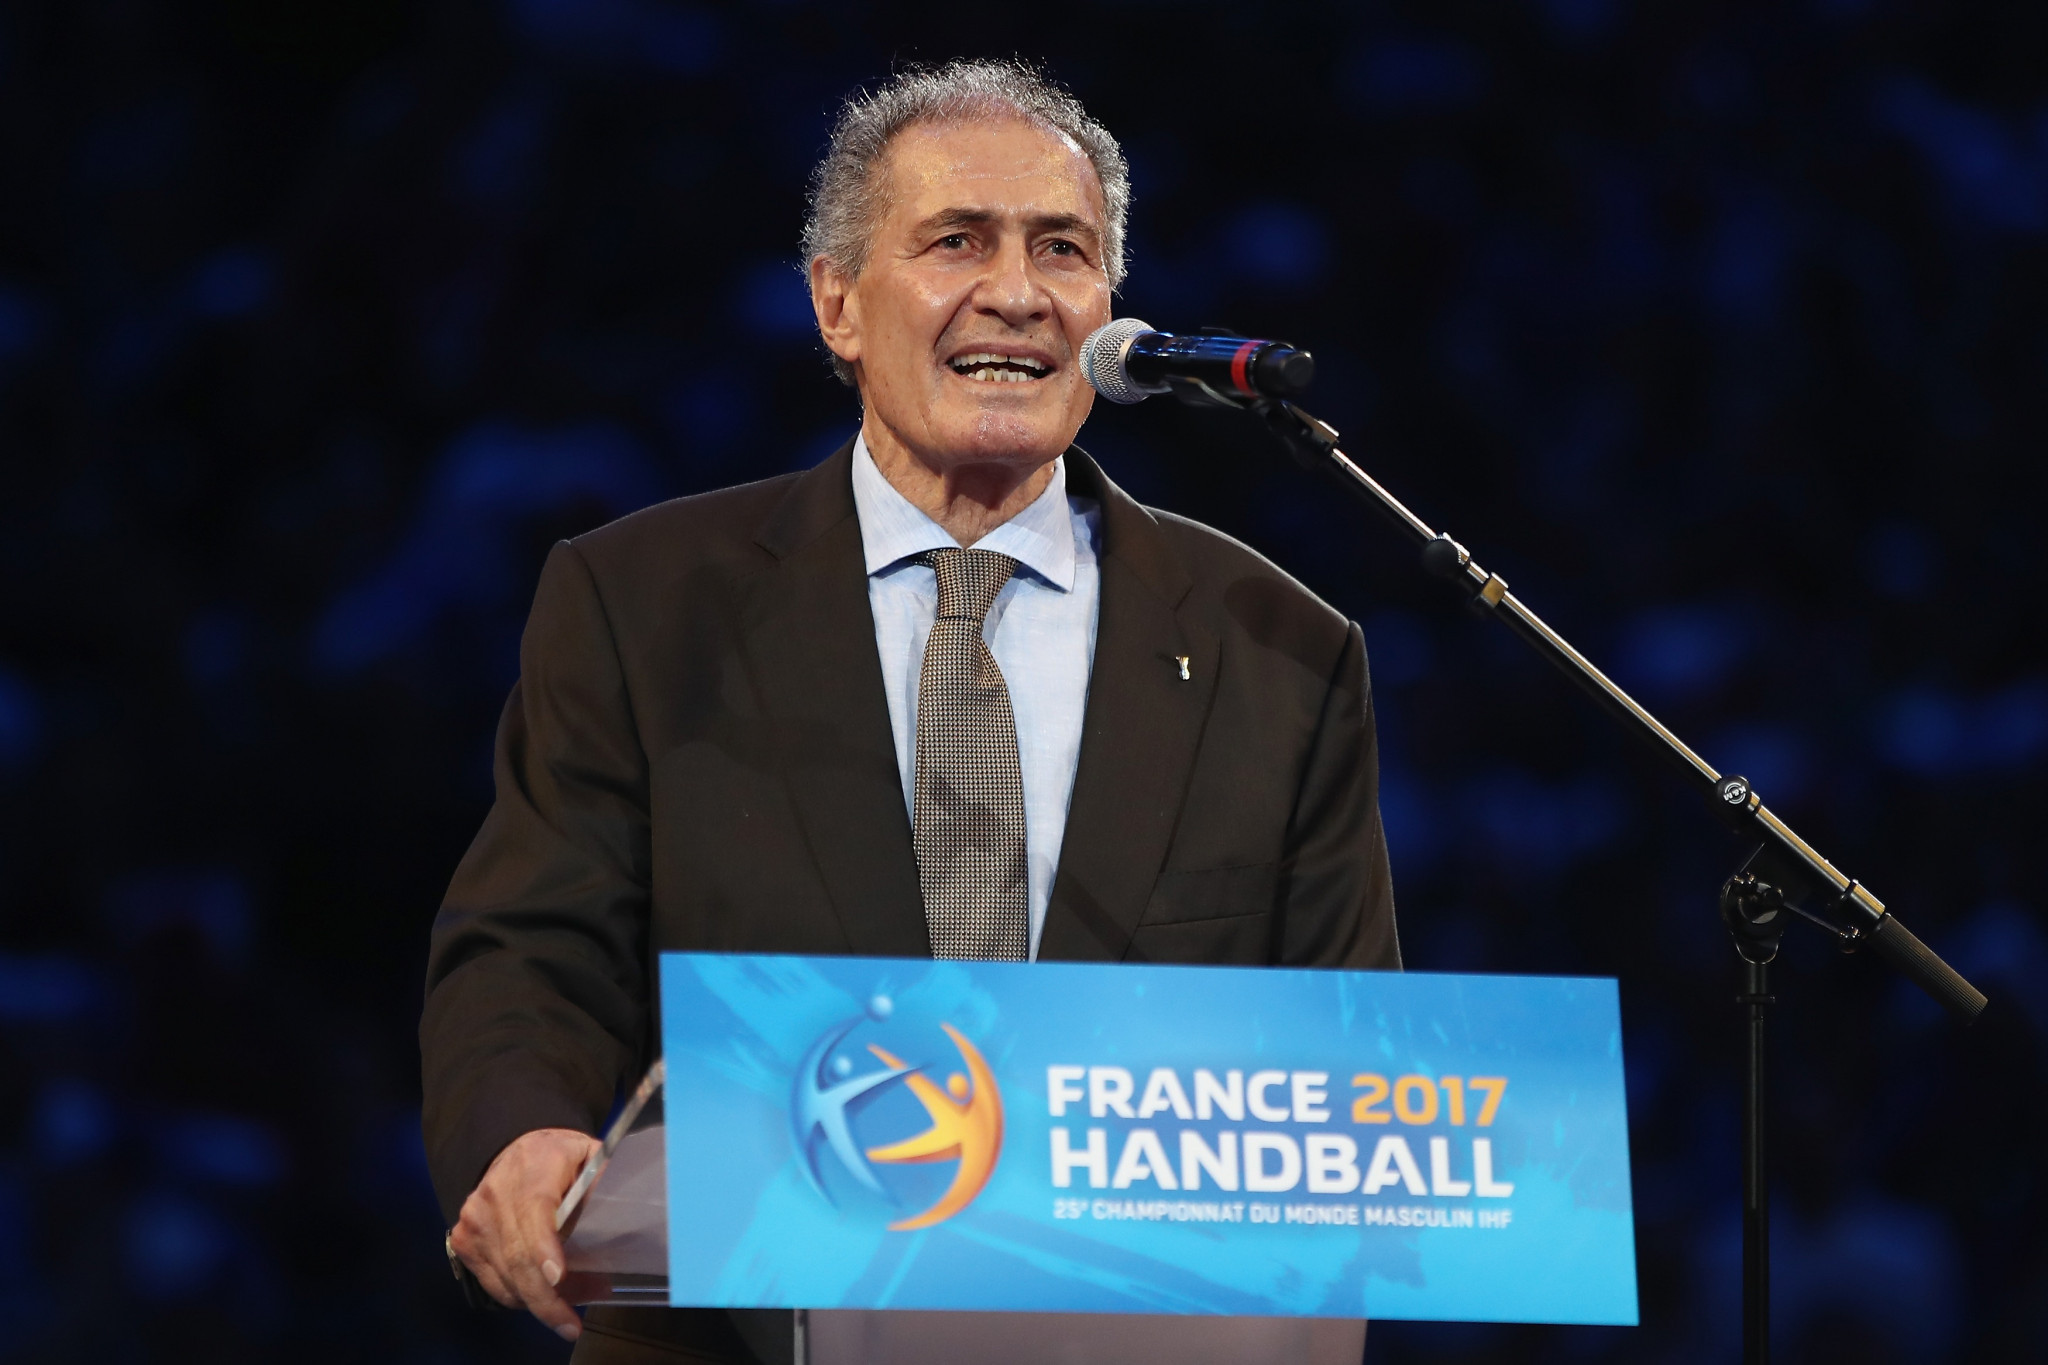 Hassan Moustafa is set to be re-elected unopposed as President of the International Handball Federation ©Getty Images